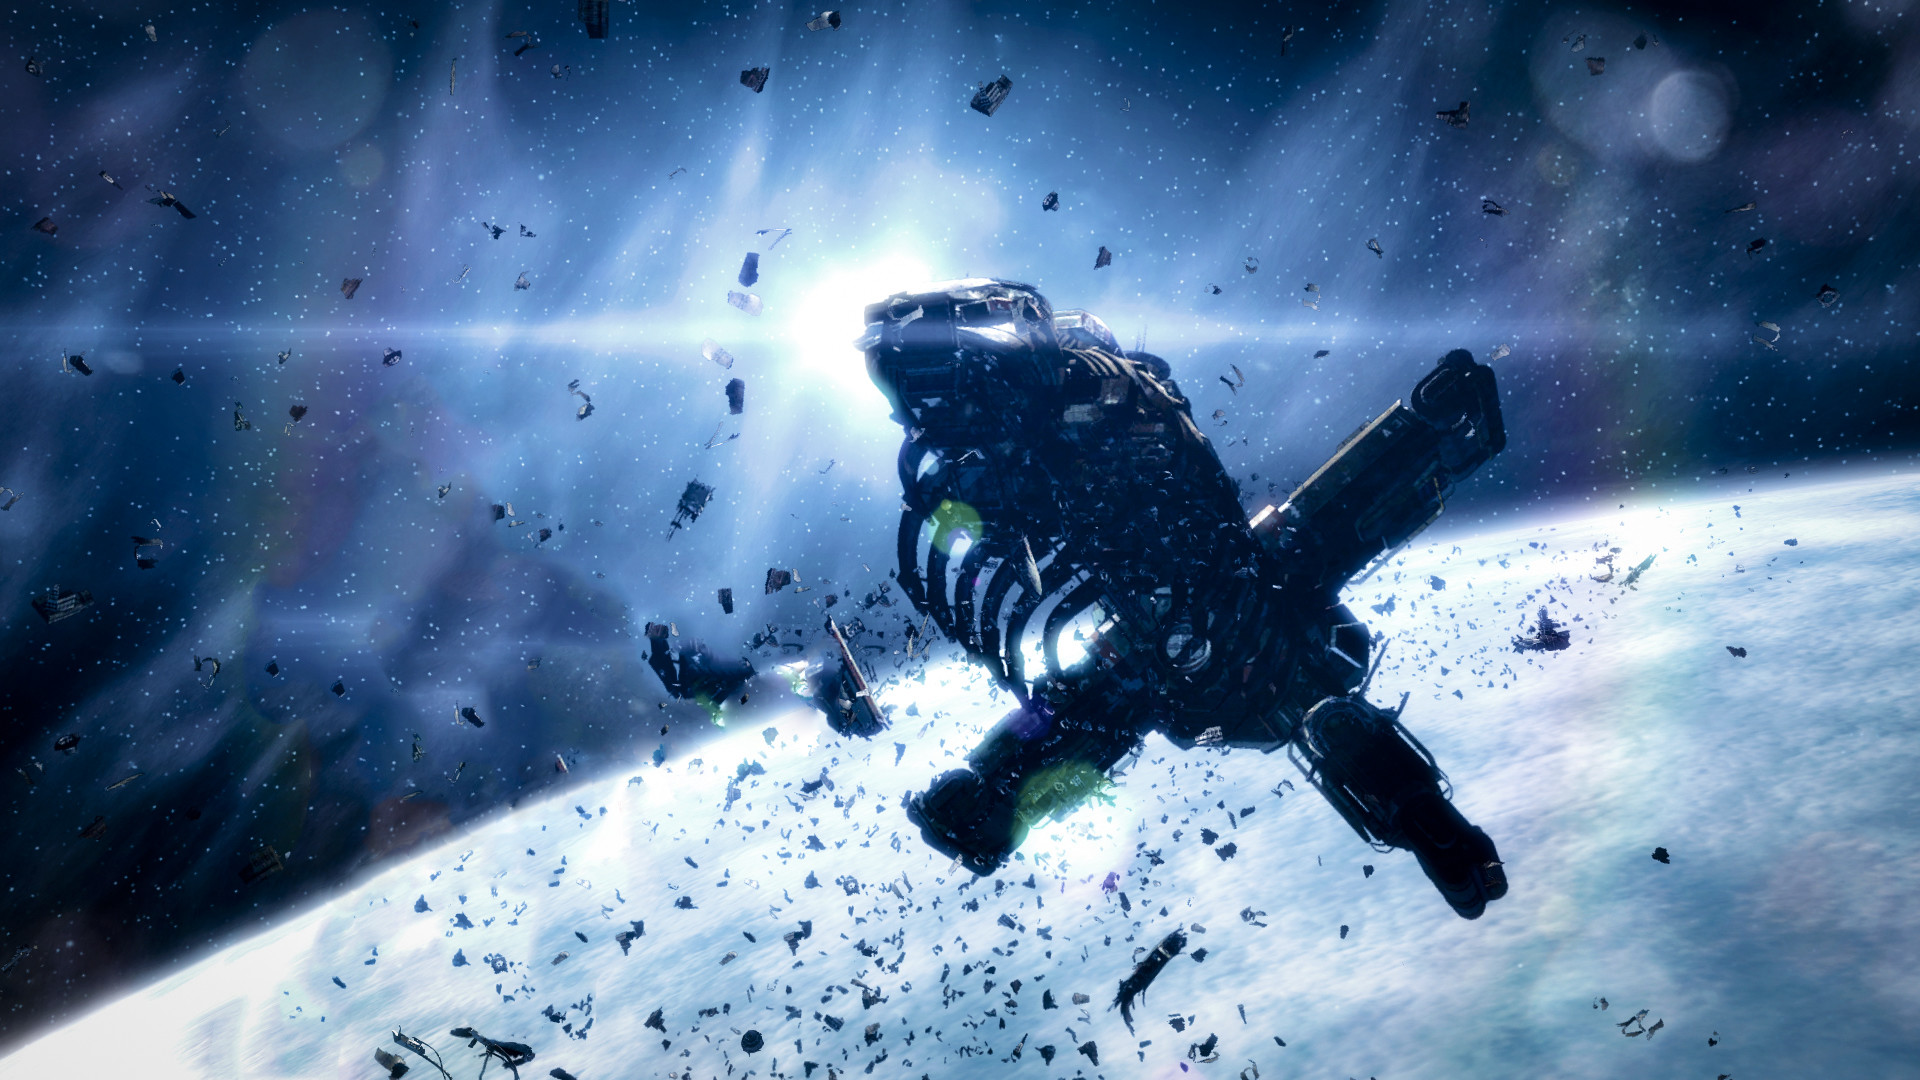 1920x1080 82 Dead Space HD Wallpapers Backgrounds Wallpaper Abyss - HD Wallpapers